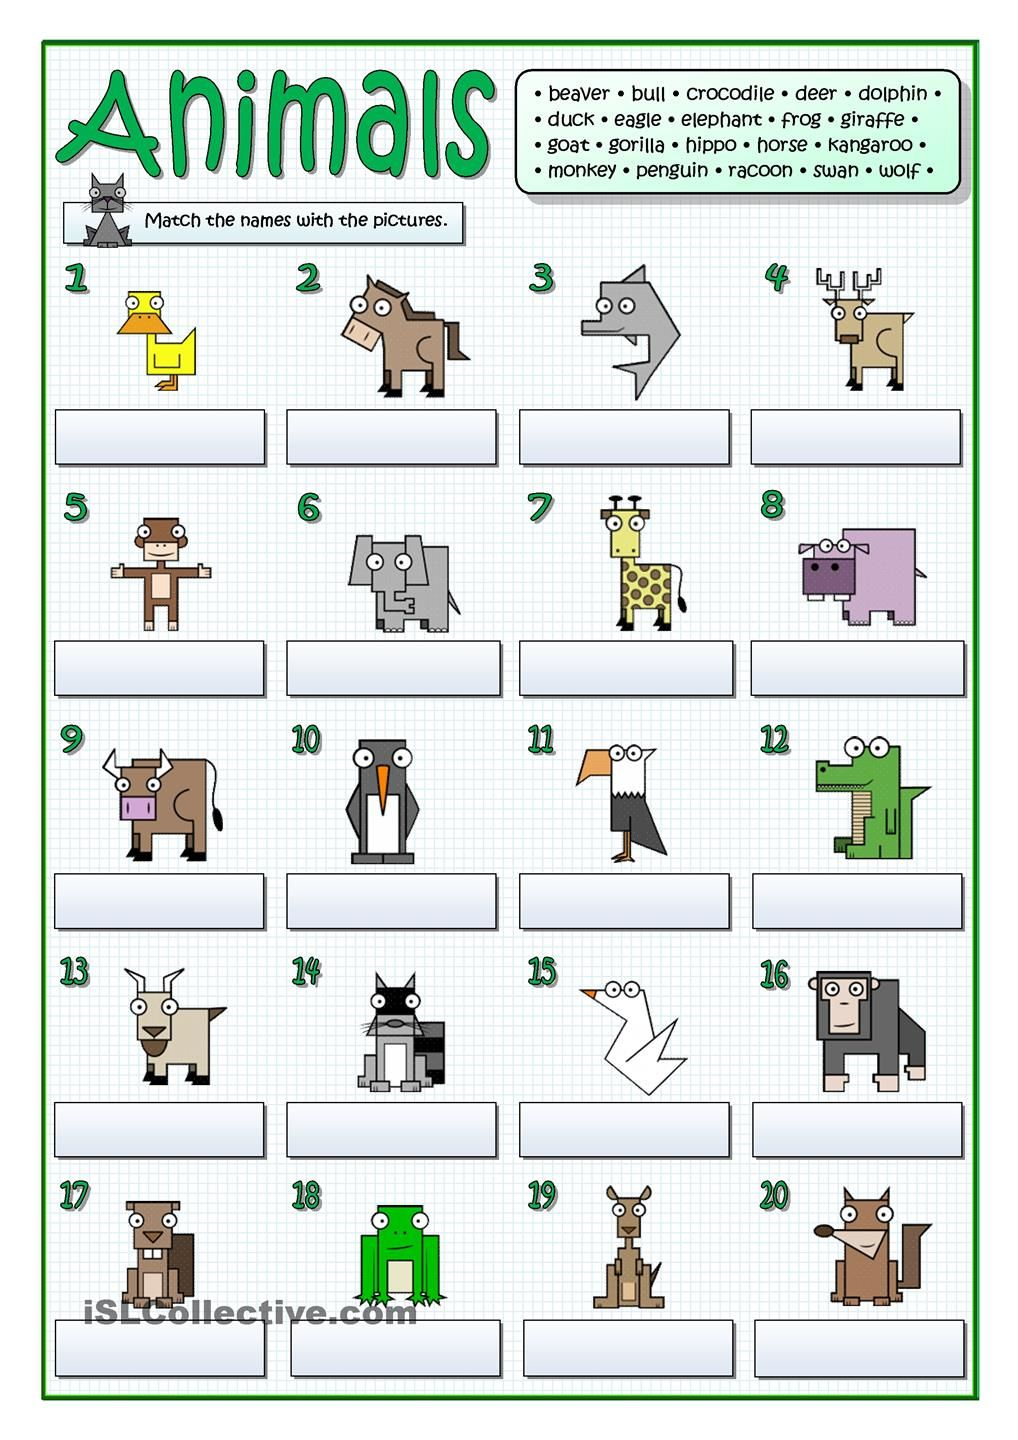 twenty animals follow my worksheets on islcollective pinterest animal english and worksheets. Black Bedroom Furniture Sets. Home Design Ideas